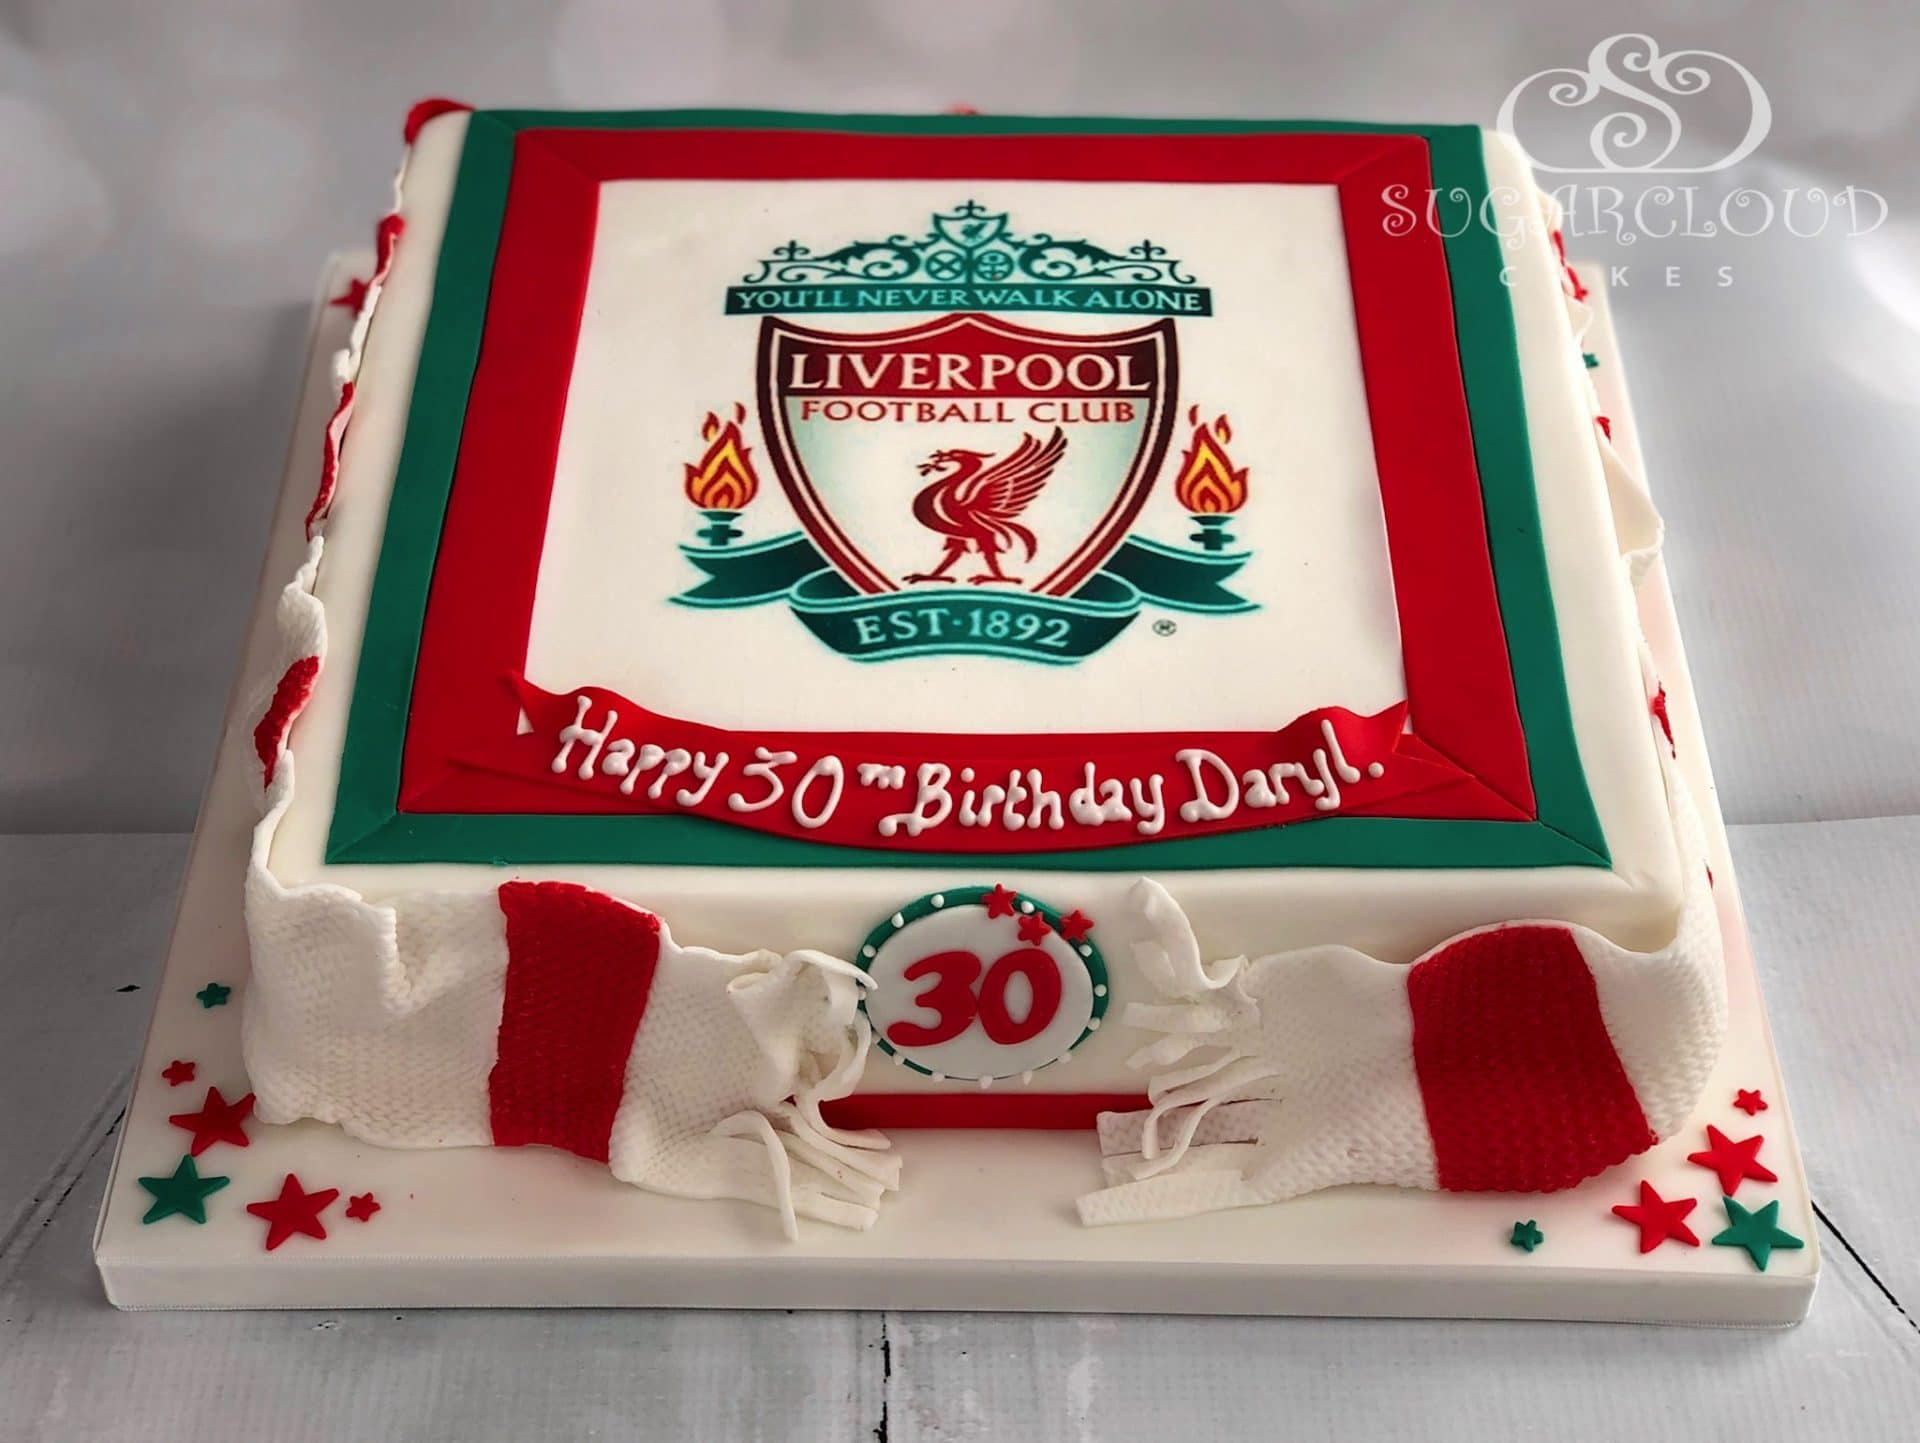 Liverpool Football Club 30th Birthday Cake